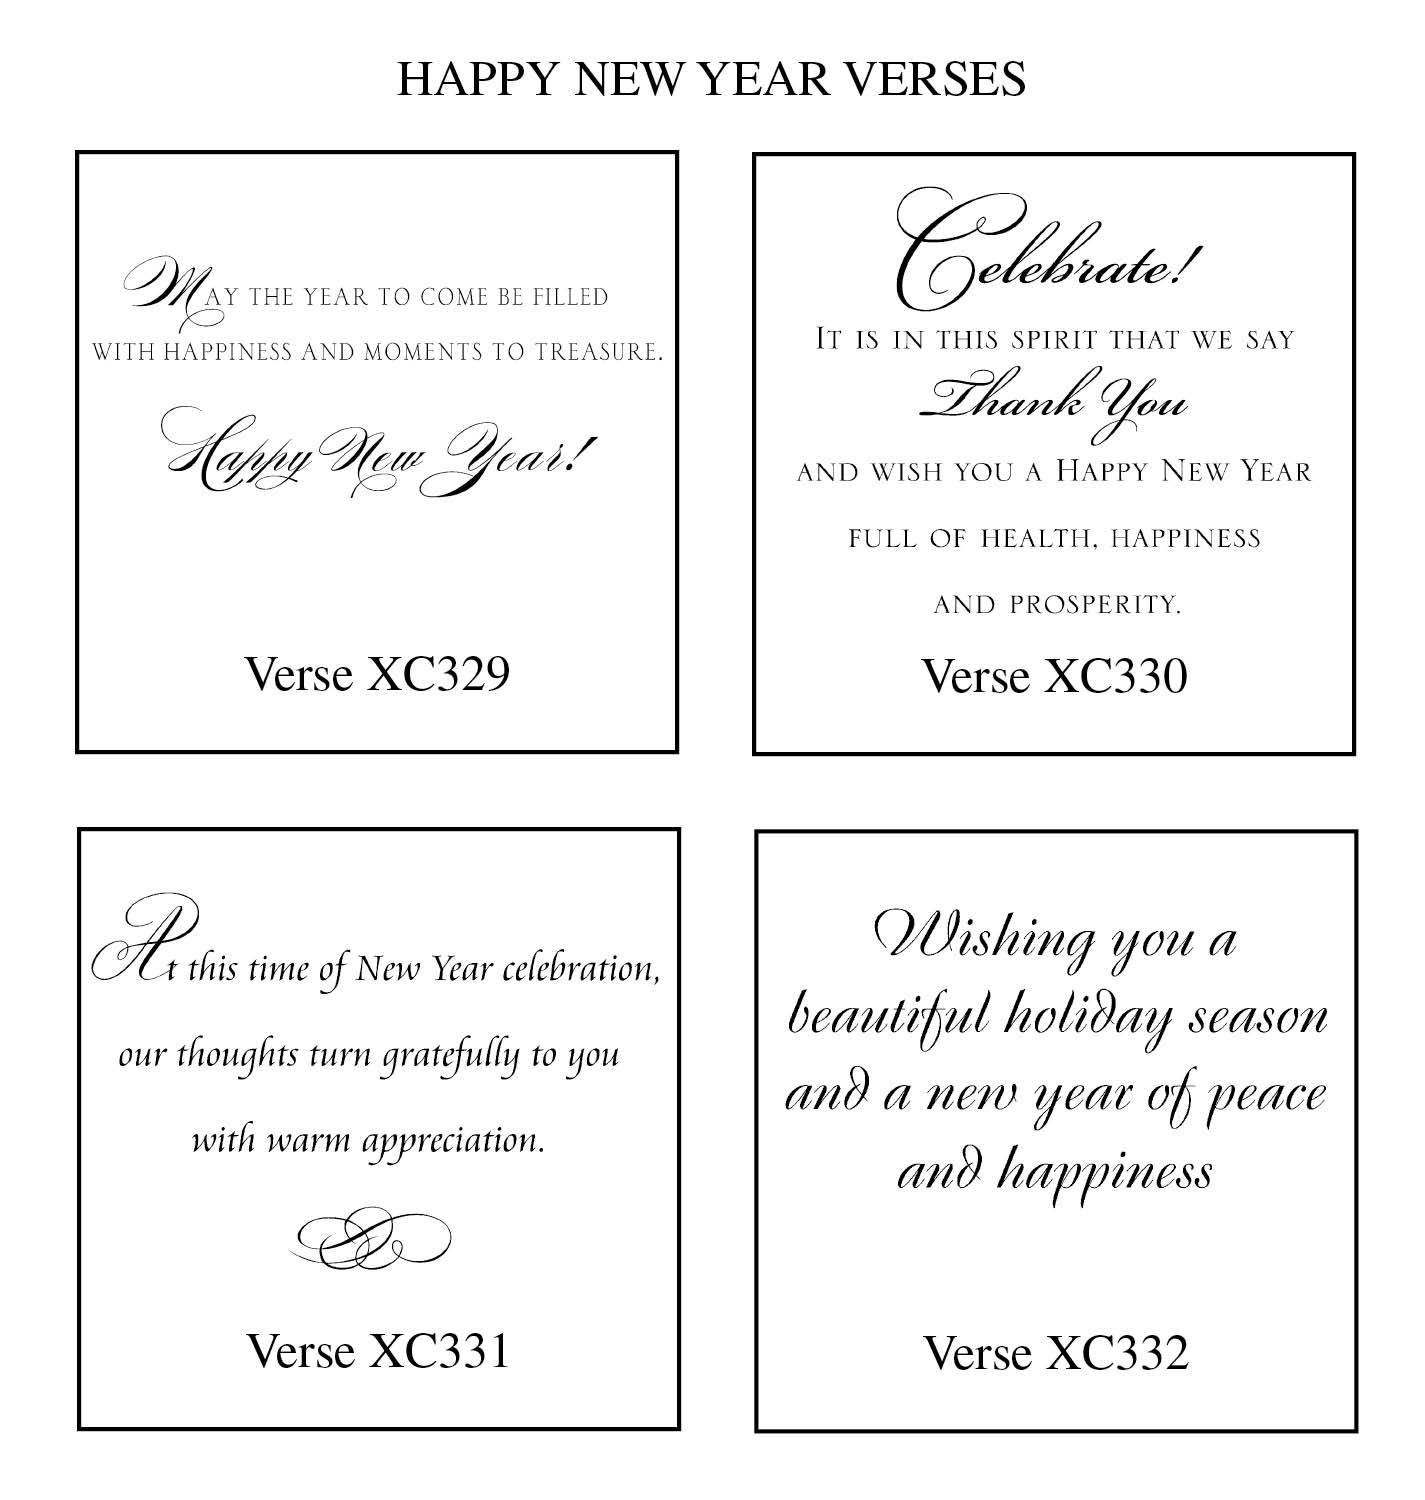 6a00e5539d5b84883301348472441e970c pi 14251500 christmas cards new years verses find this pin and more on christmas cards kristyandbryce Choice Image